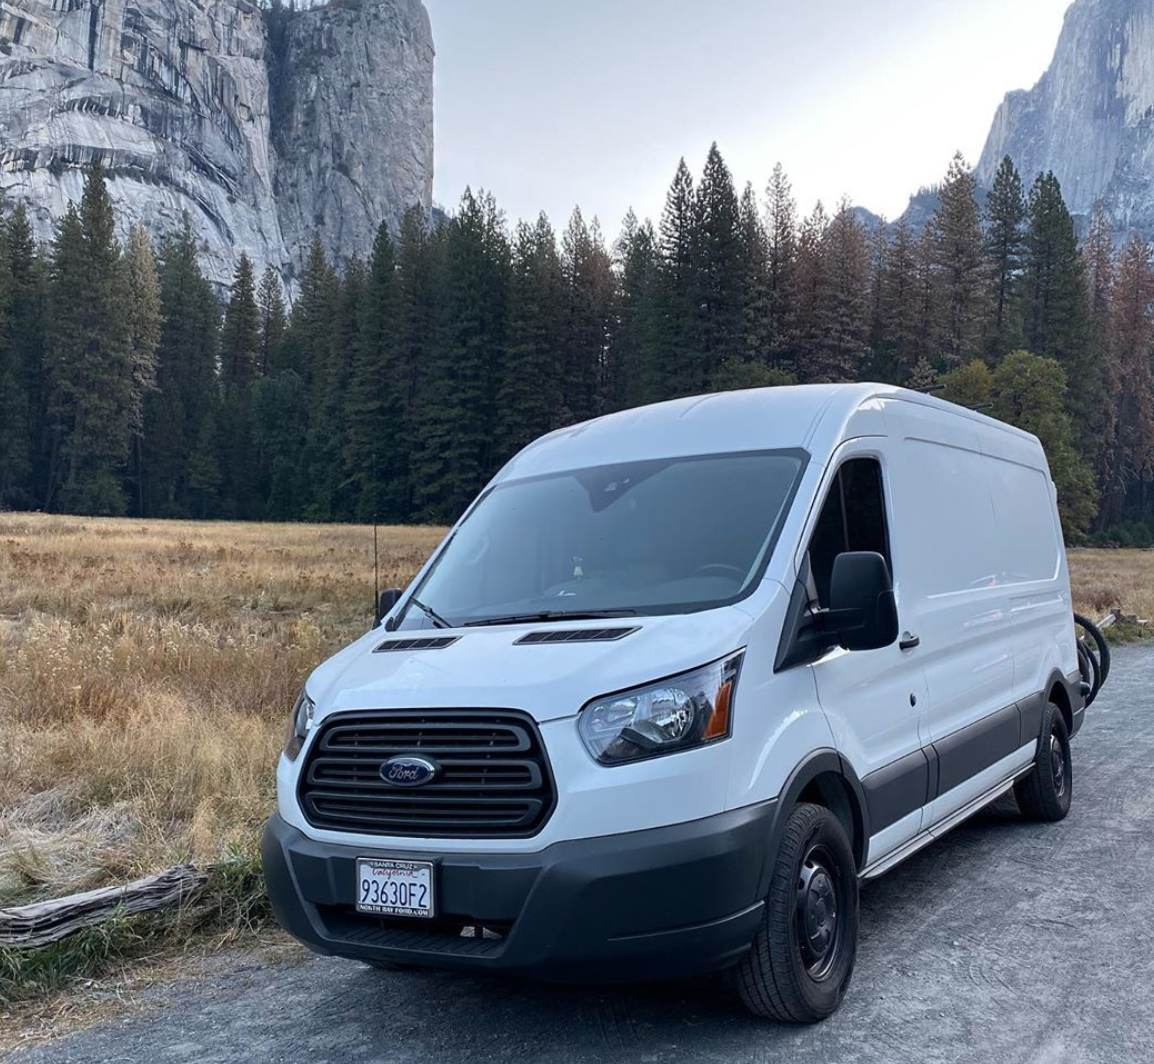 Small_Ford_Camper